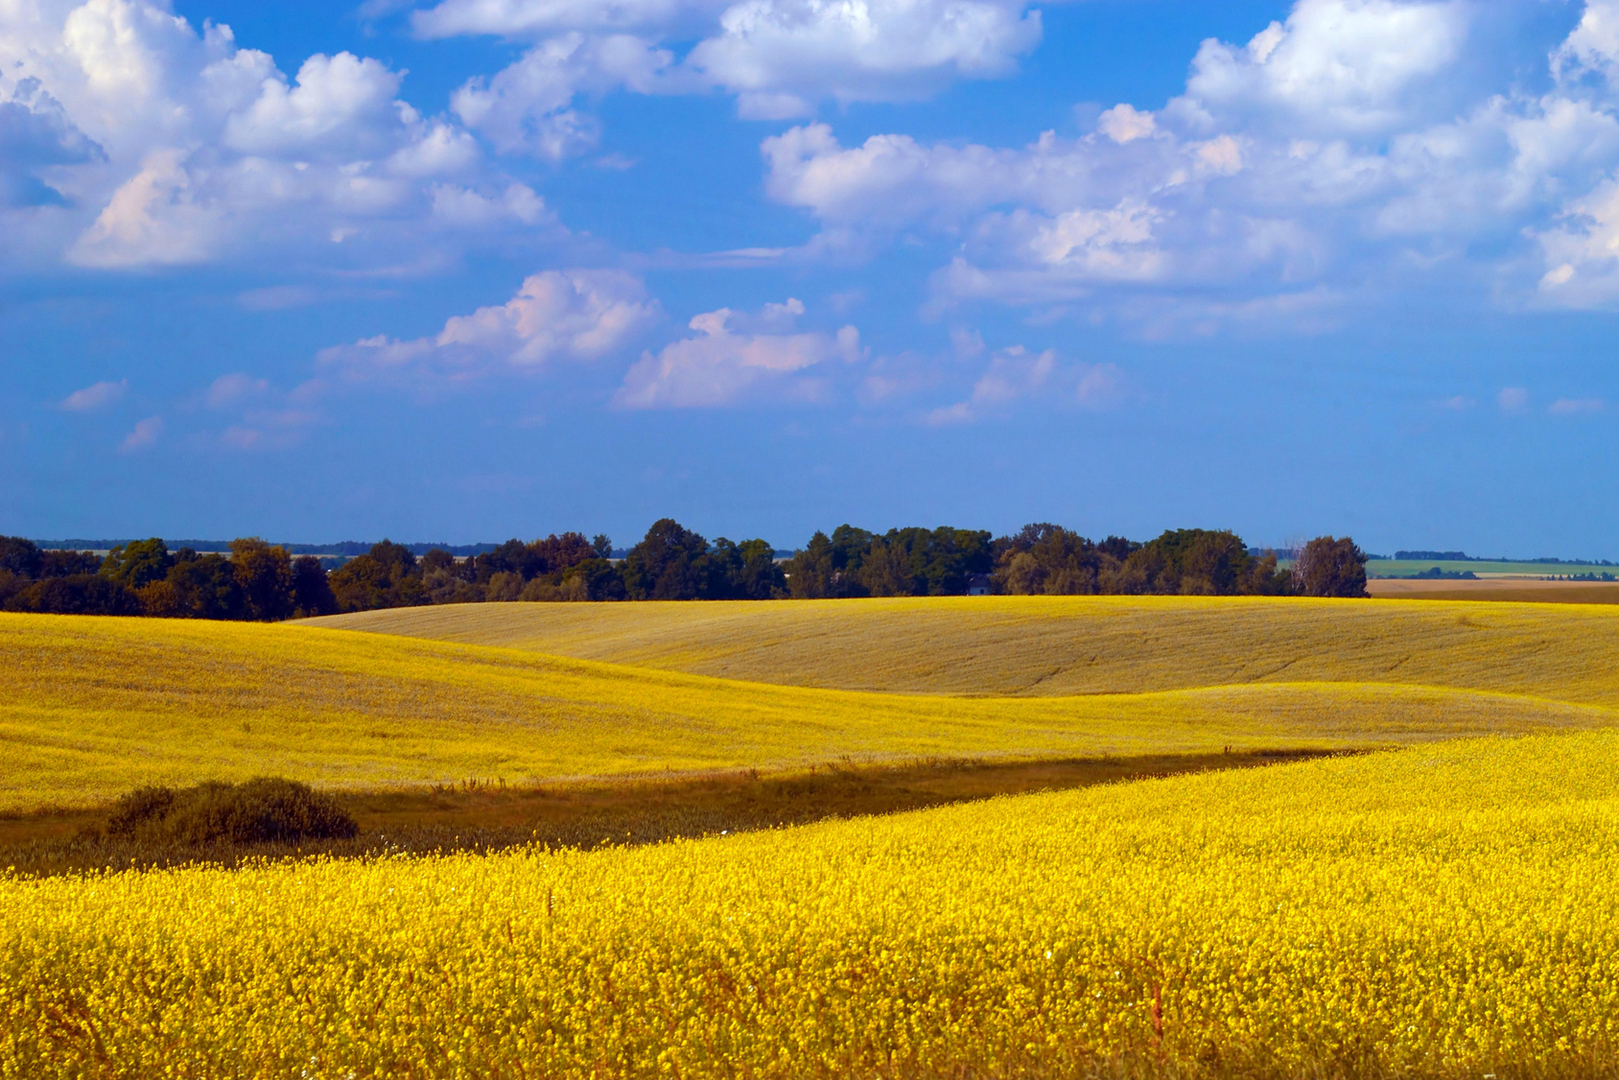 A landscape of yellow field and blue sky